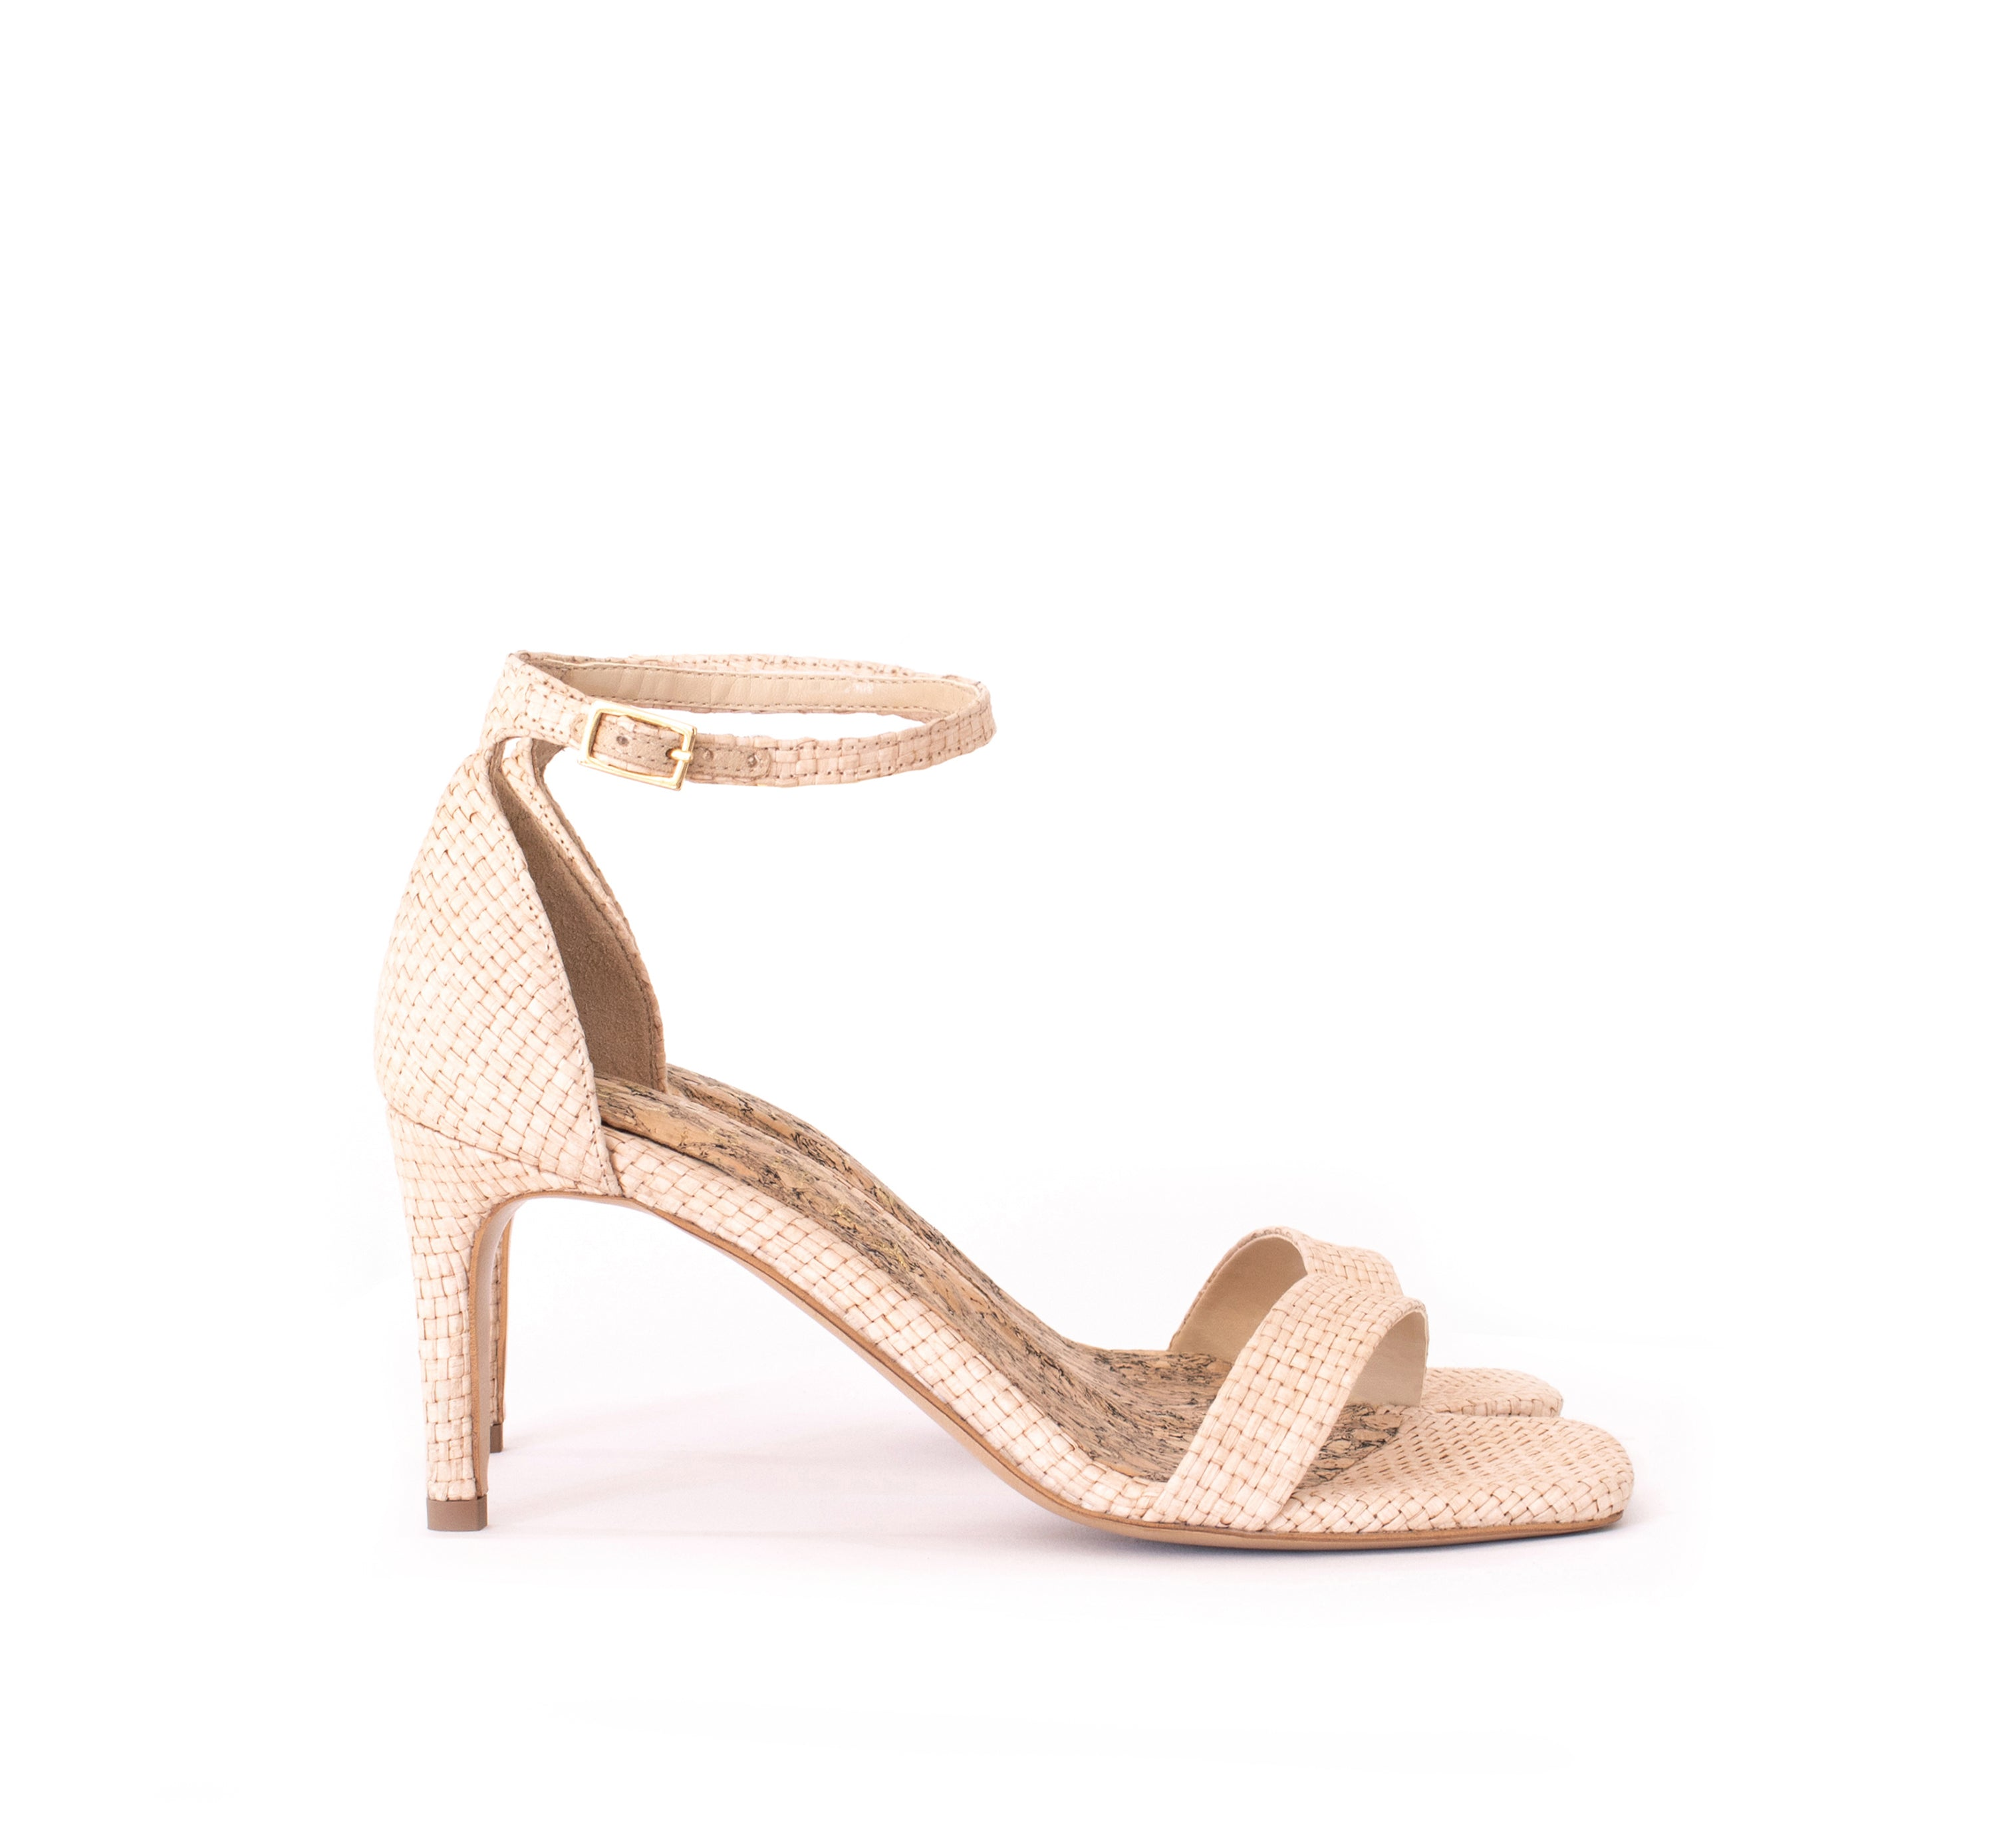 Low Stiletto in Natural Raffia. Vegan mid-heels made from recycled wood pulp. Autumn Winter 2019 by Sydney Brown . Luxury ethical shoes for women. Handmade in Portugal